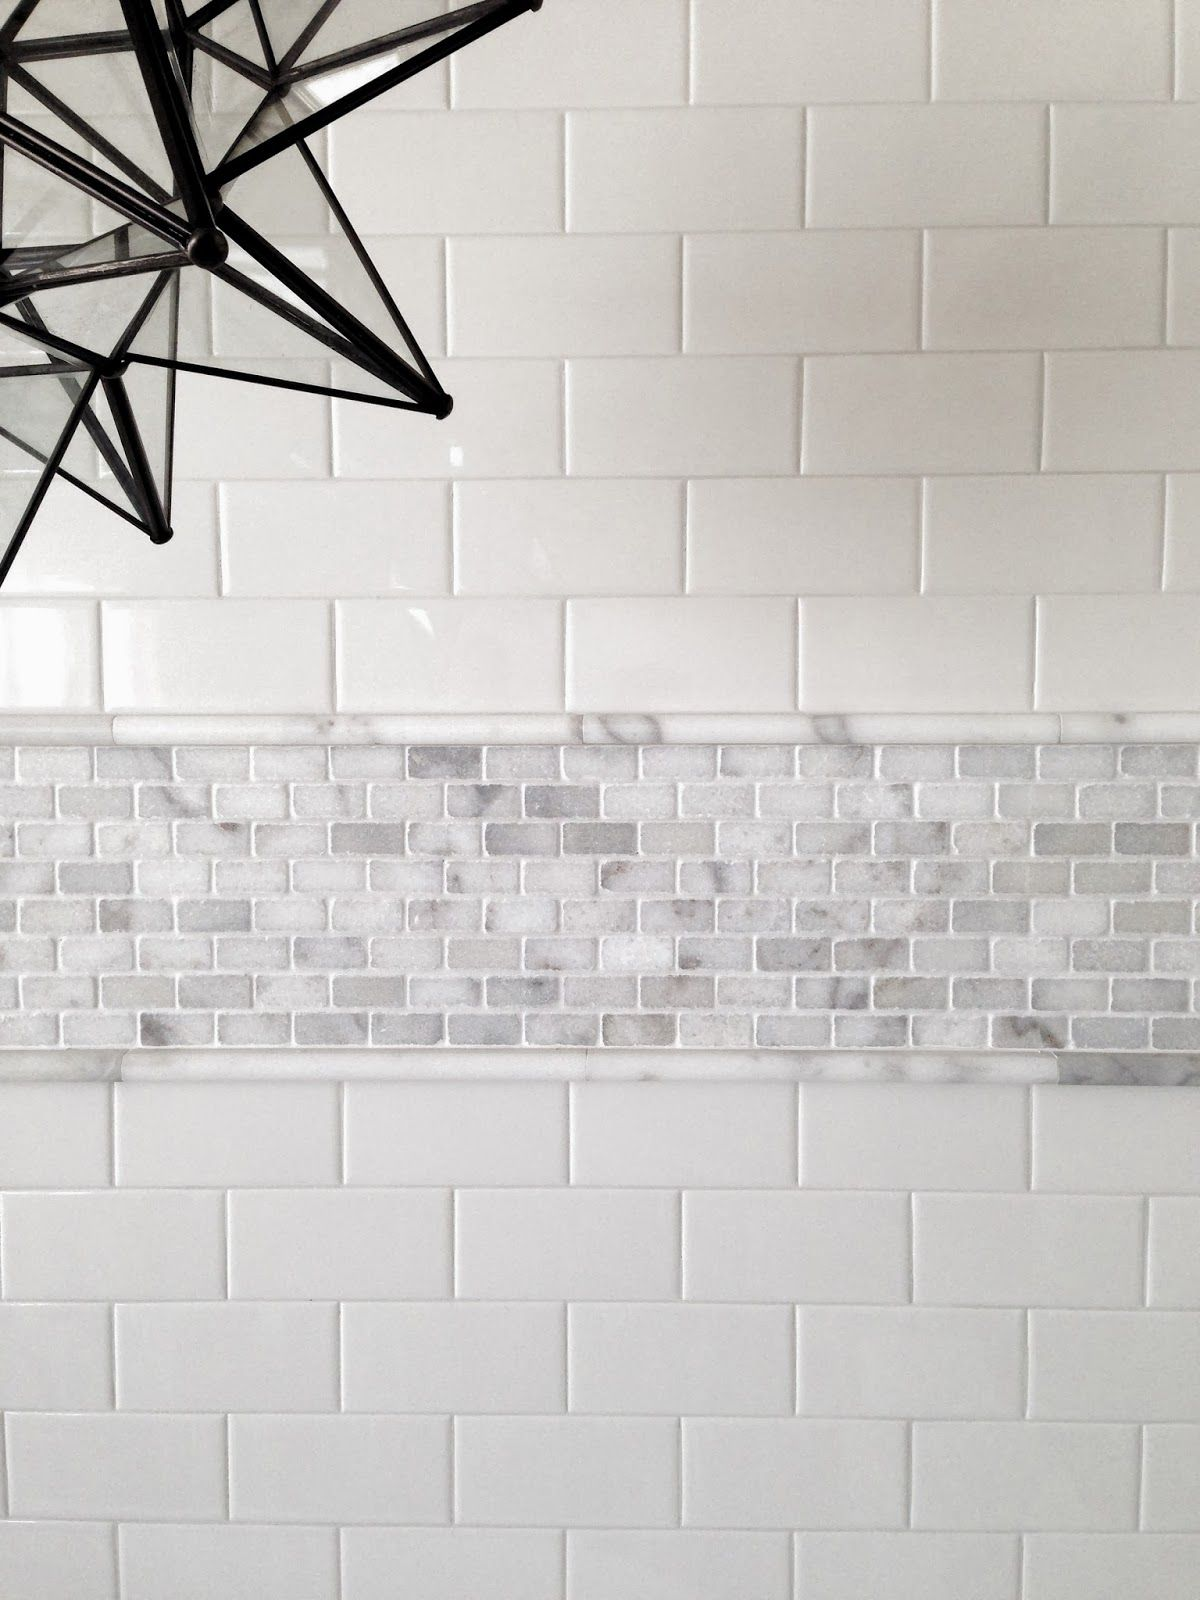 Greige interior design ideas and inspiration for the transitional used this as trim inside my shower with the marbled pencil trim i used carrara porcelain tile dont be afraid of mixing materials dailygadgetfo Choice Image